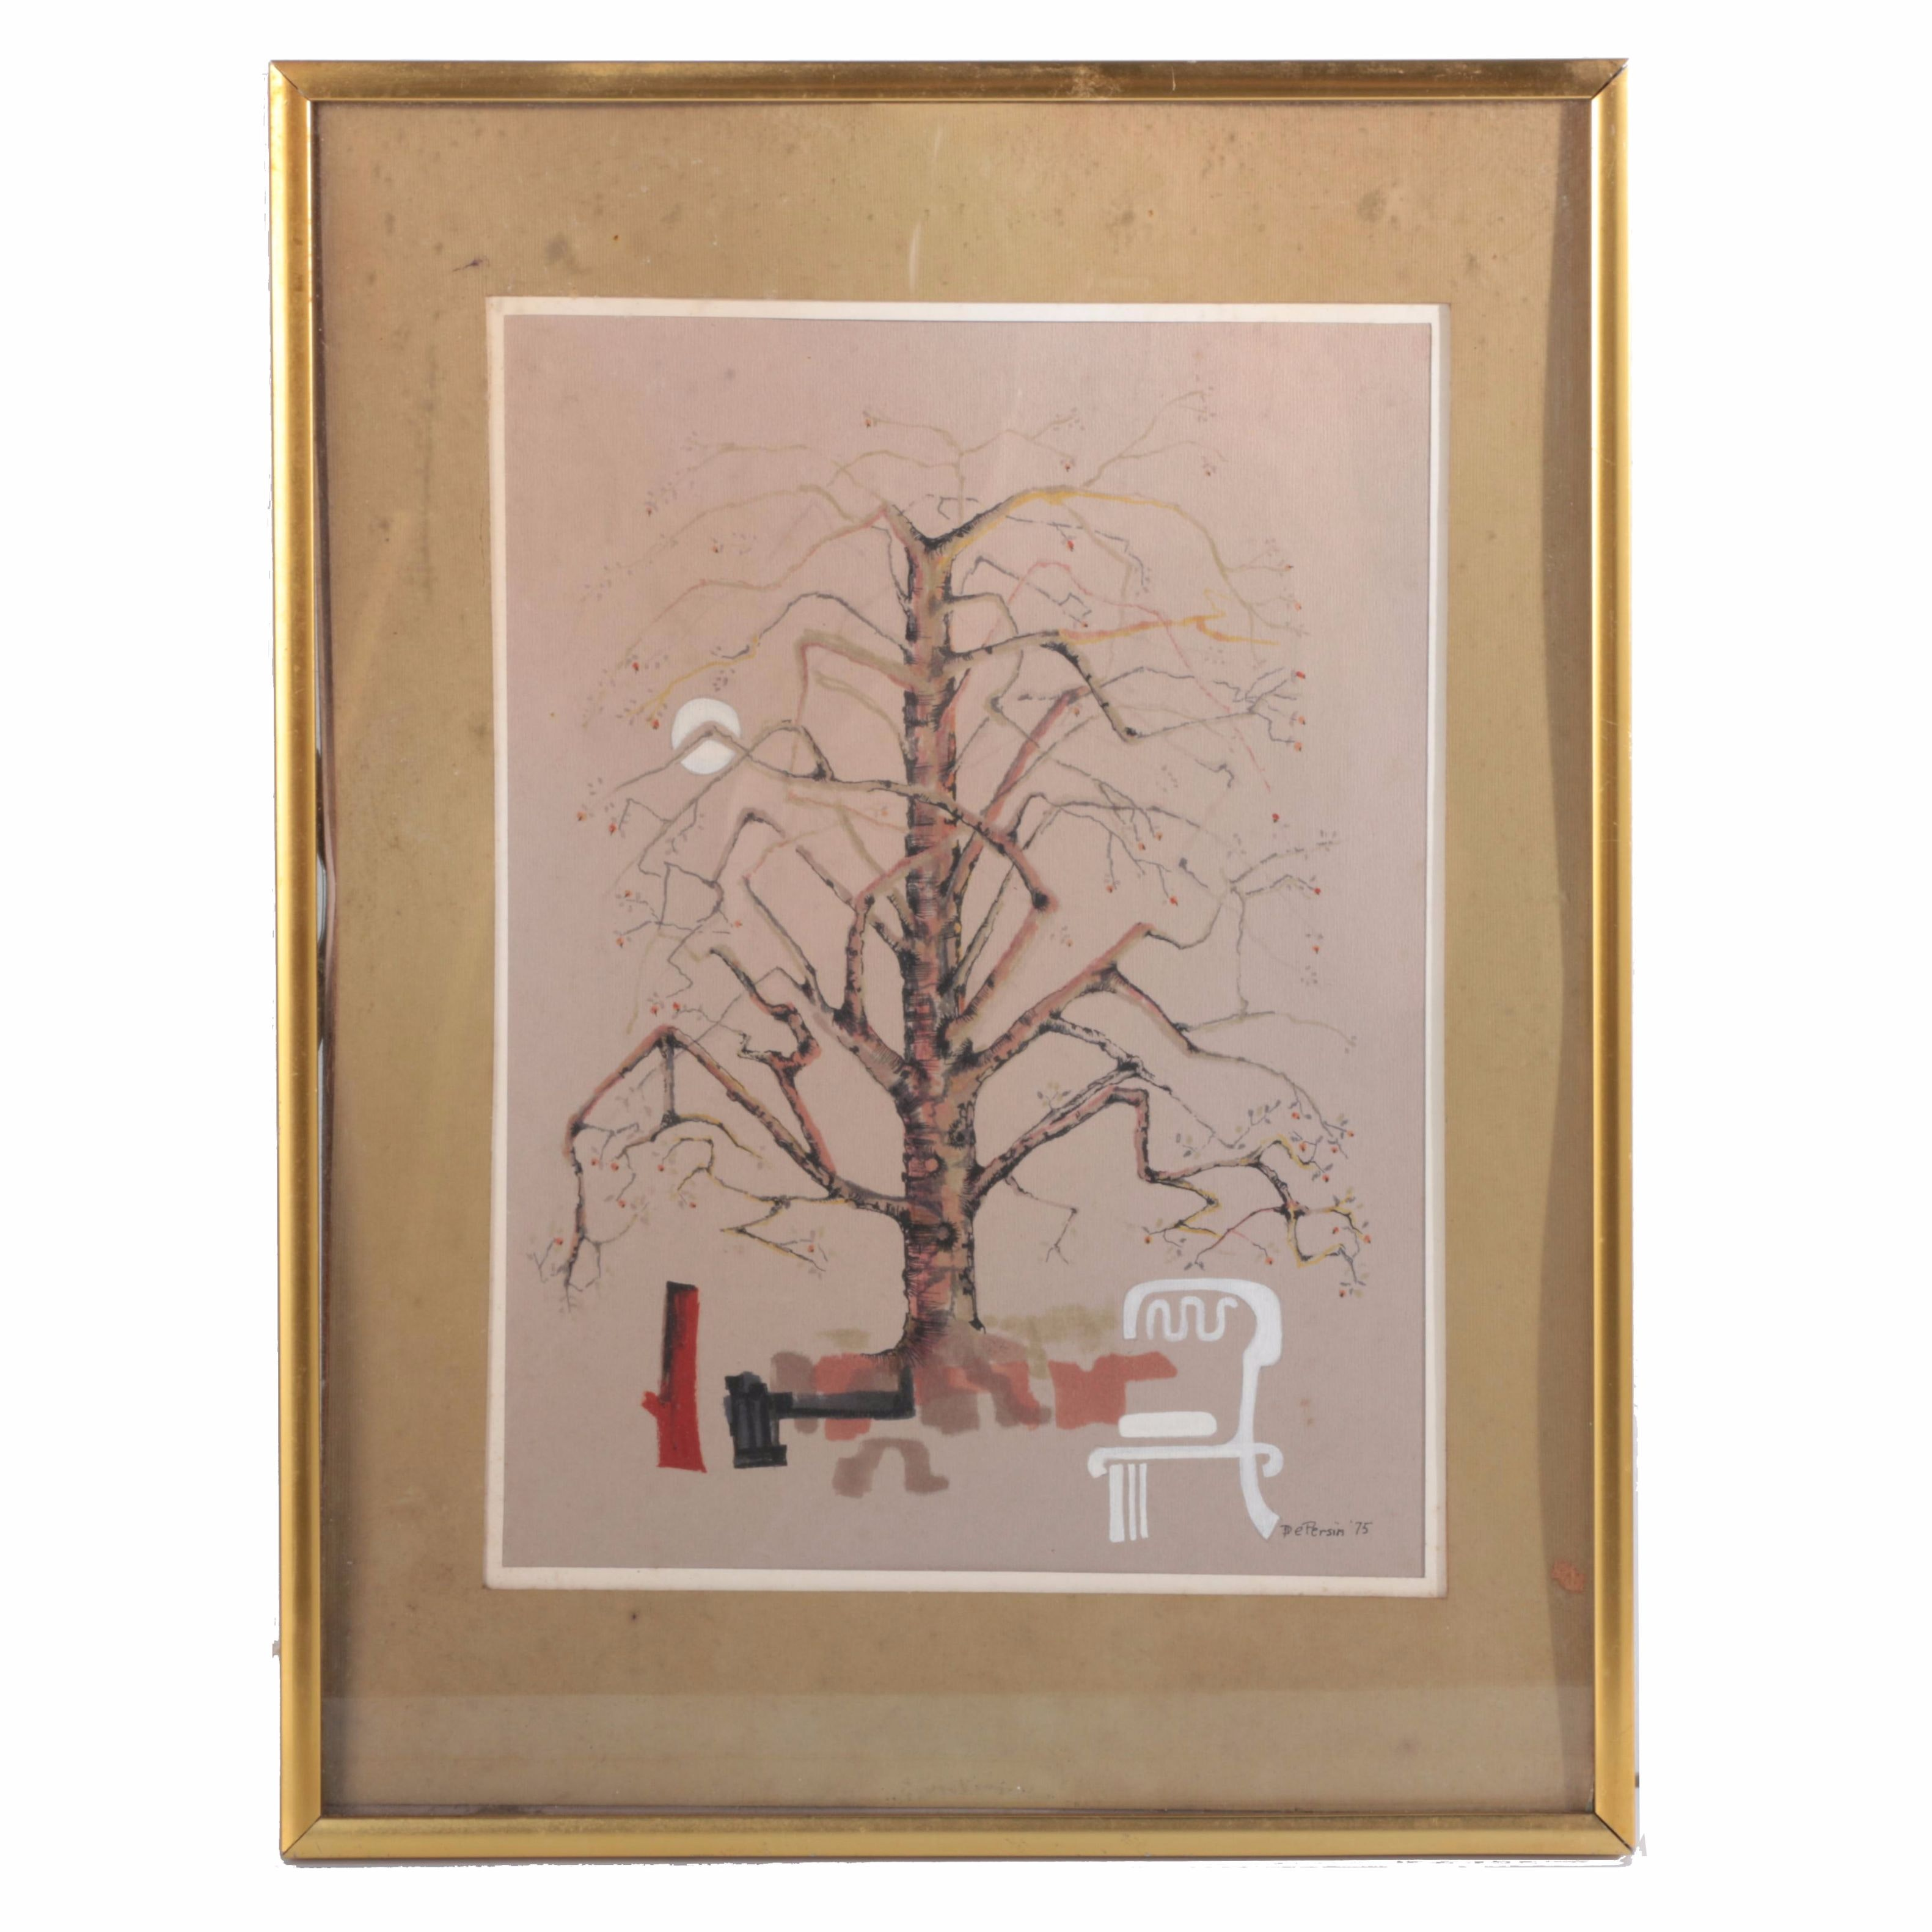 DePersiis Vintage Watercolor and Ink Painting on Board of a Tree